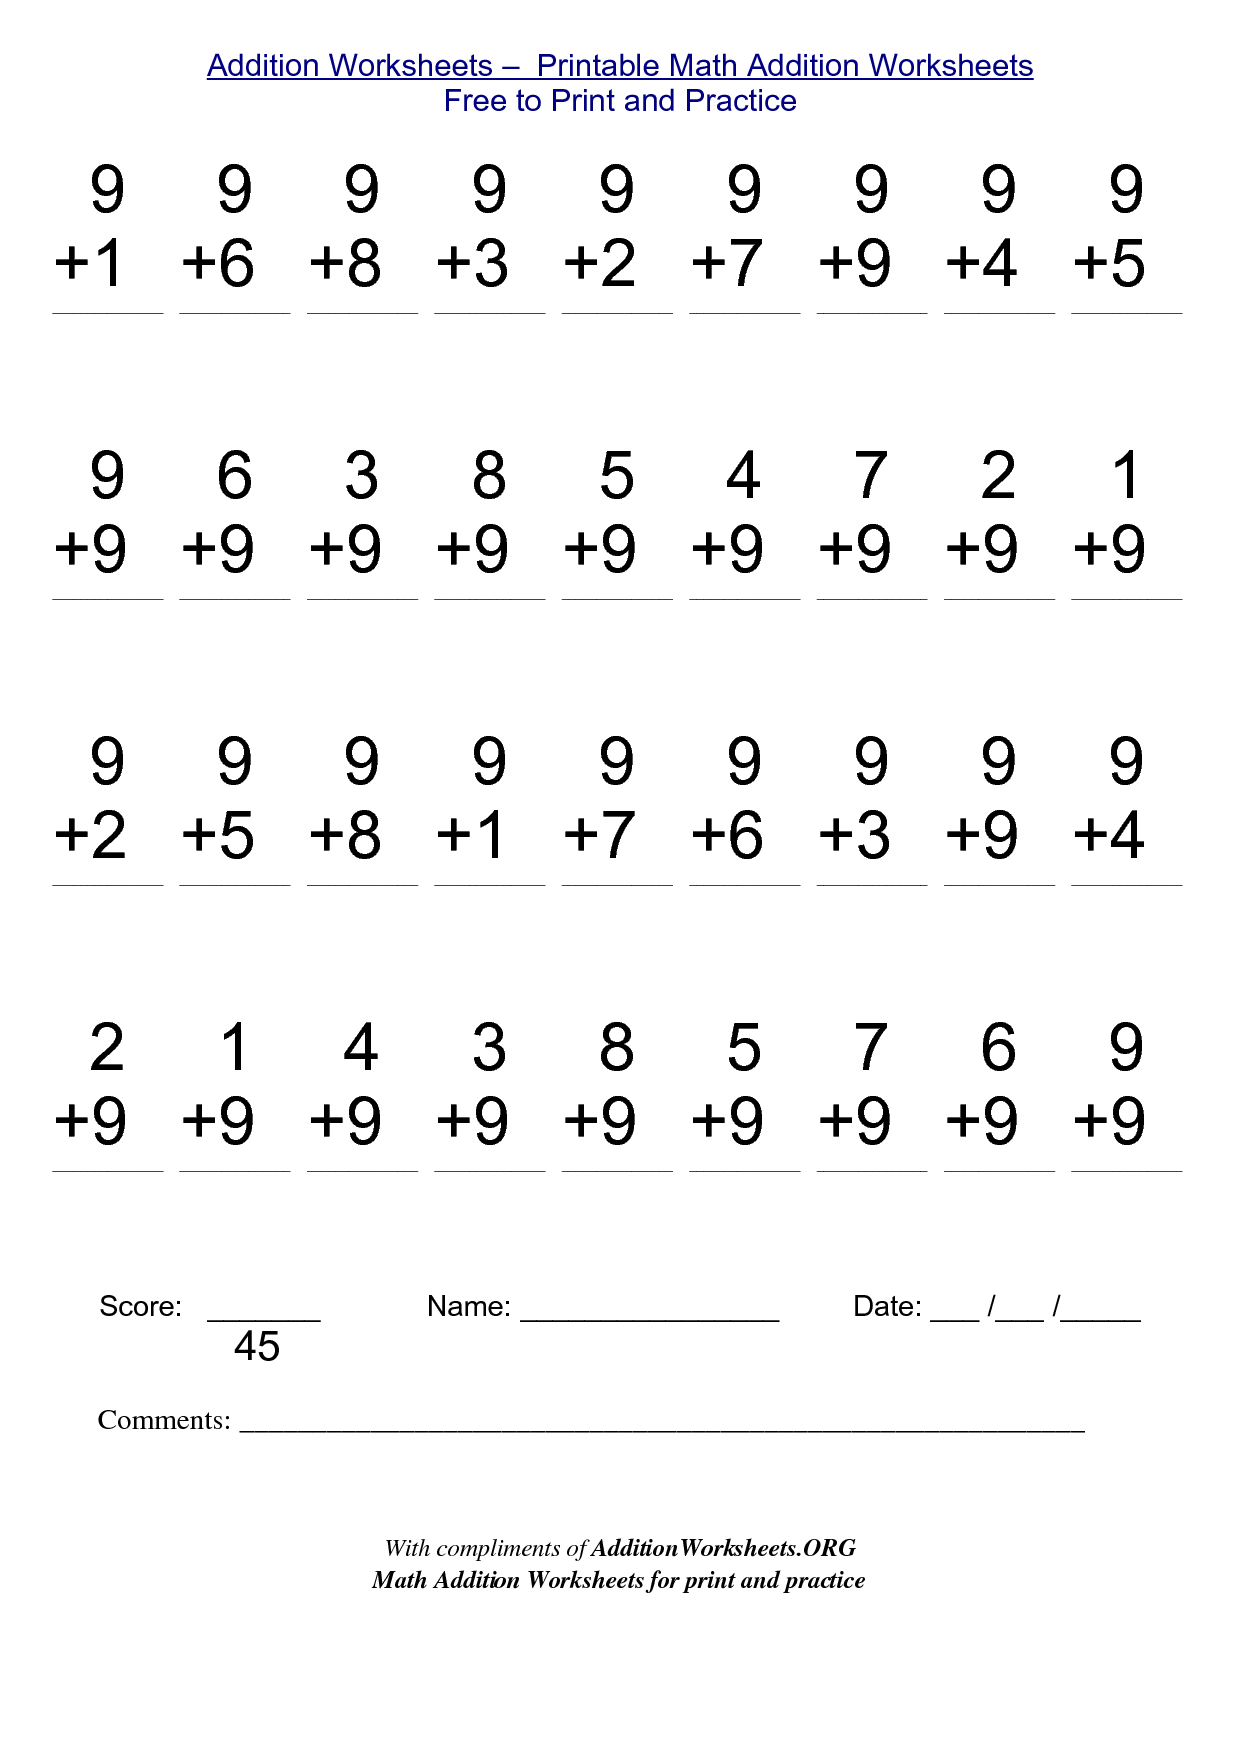 Free Addition Worksheets for Grades 1 and 2 | Addition worksheets ...